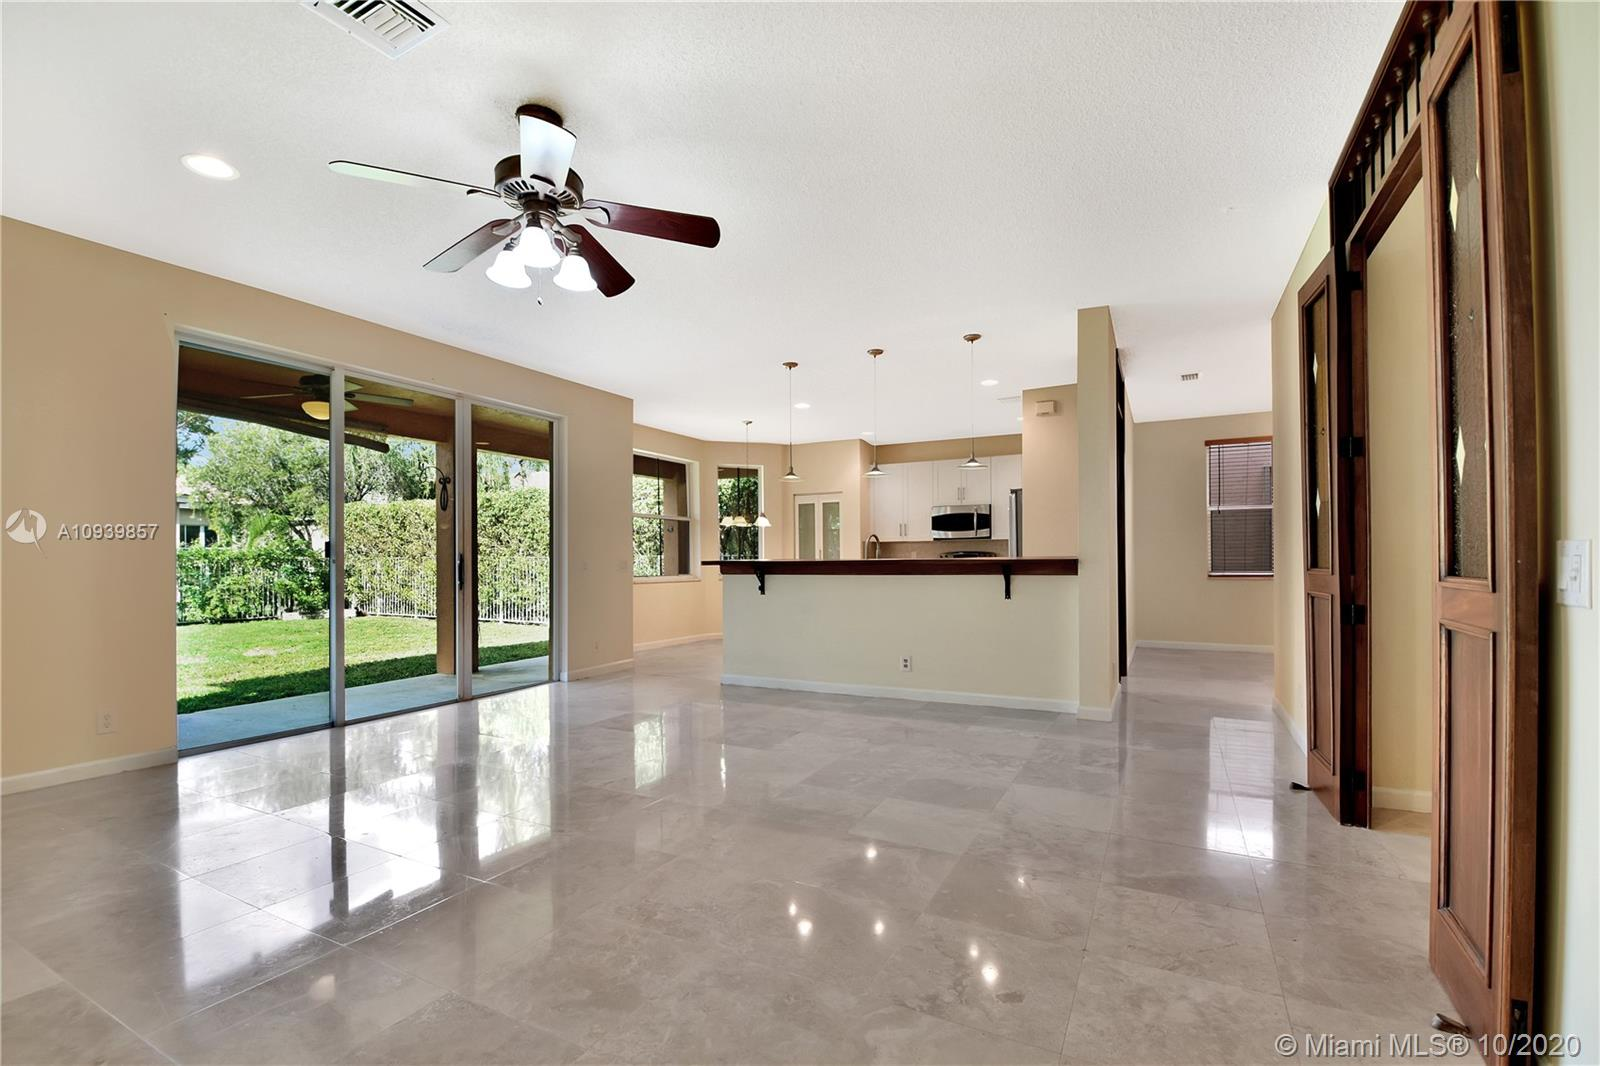 Photo - 1319 Croton Ct, Weston FL 33327